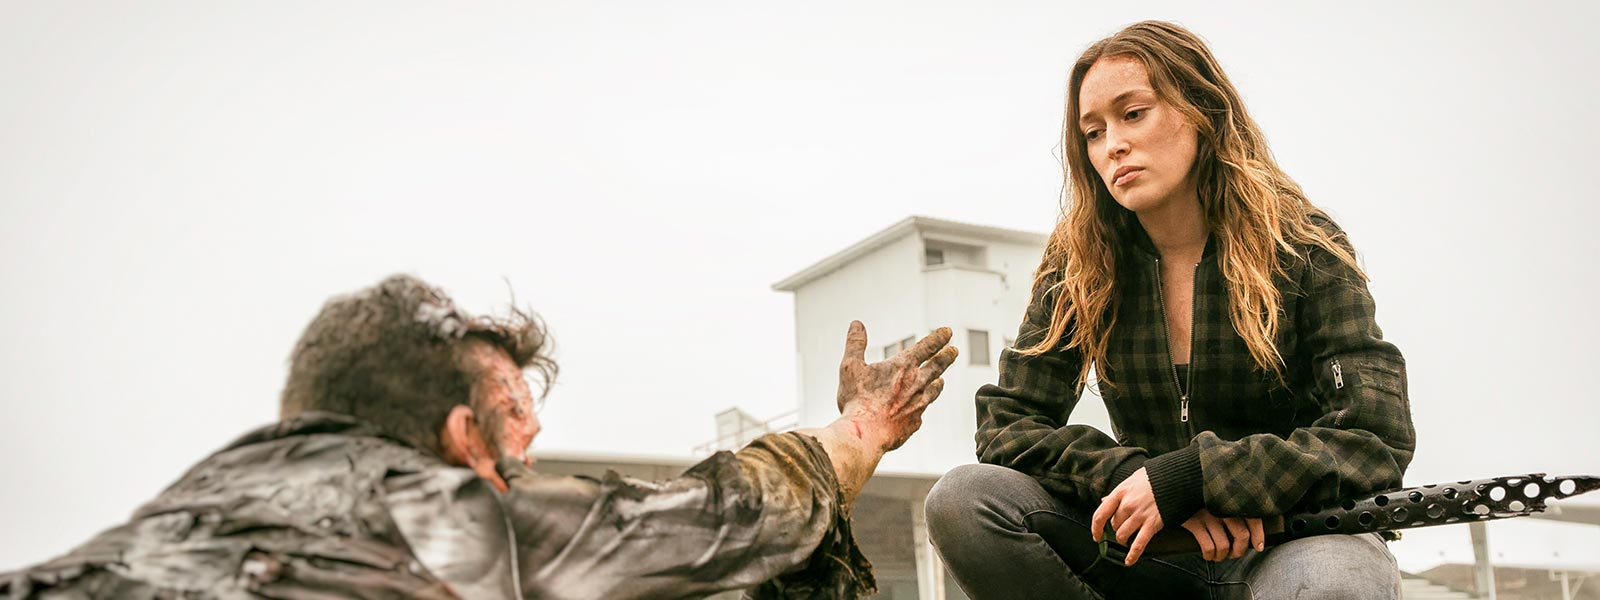 fear-the-walking-dead-episode-407-alicia-debnam-carey-post-800×600